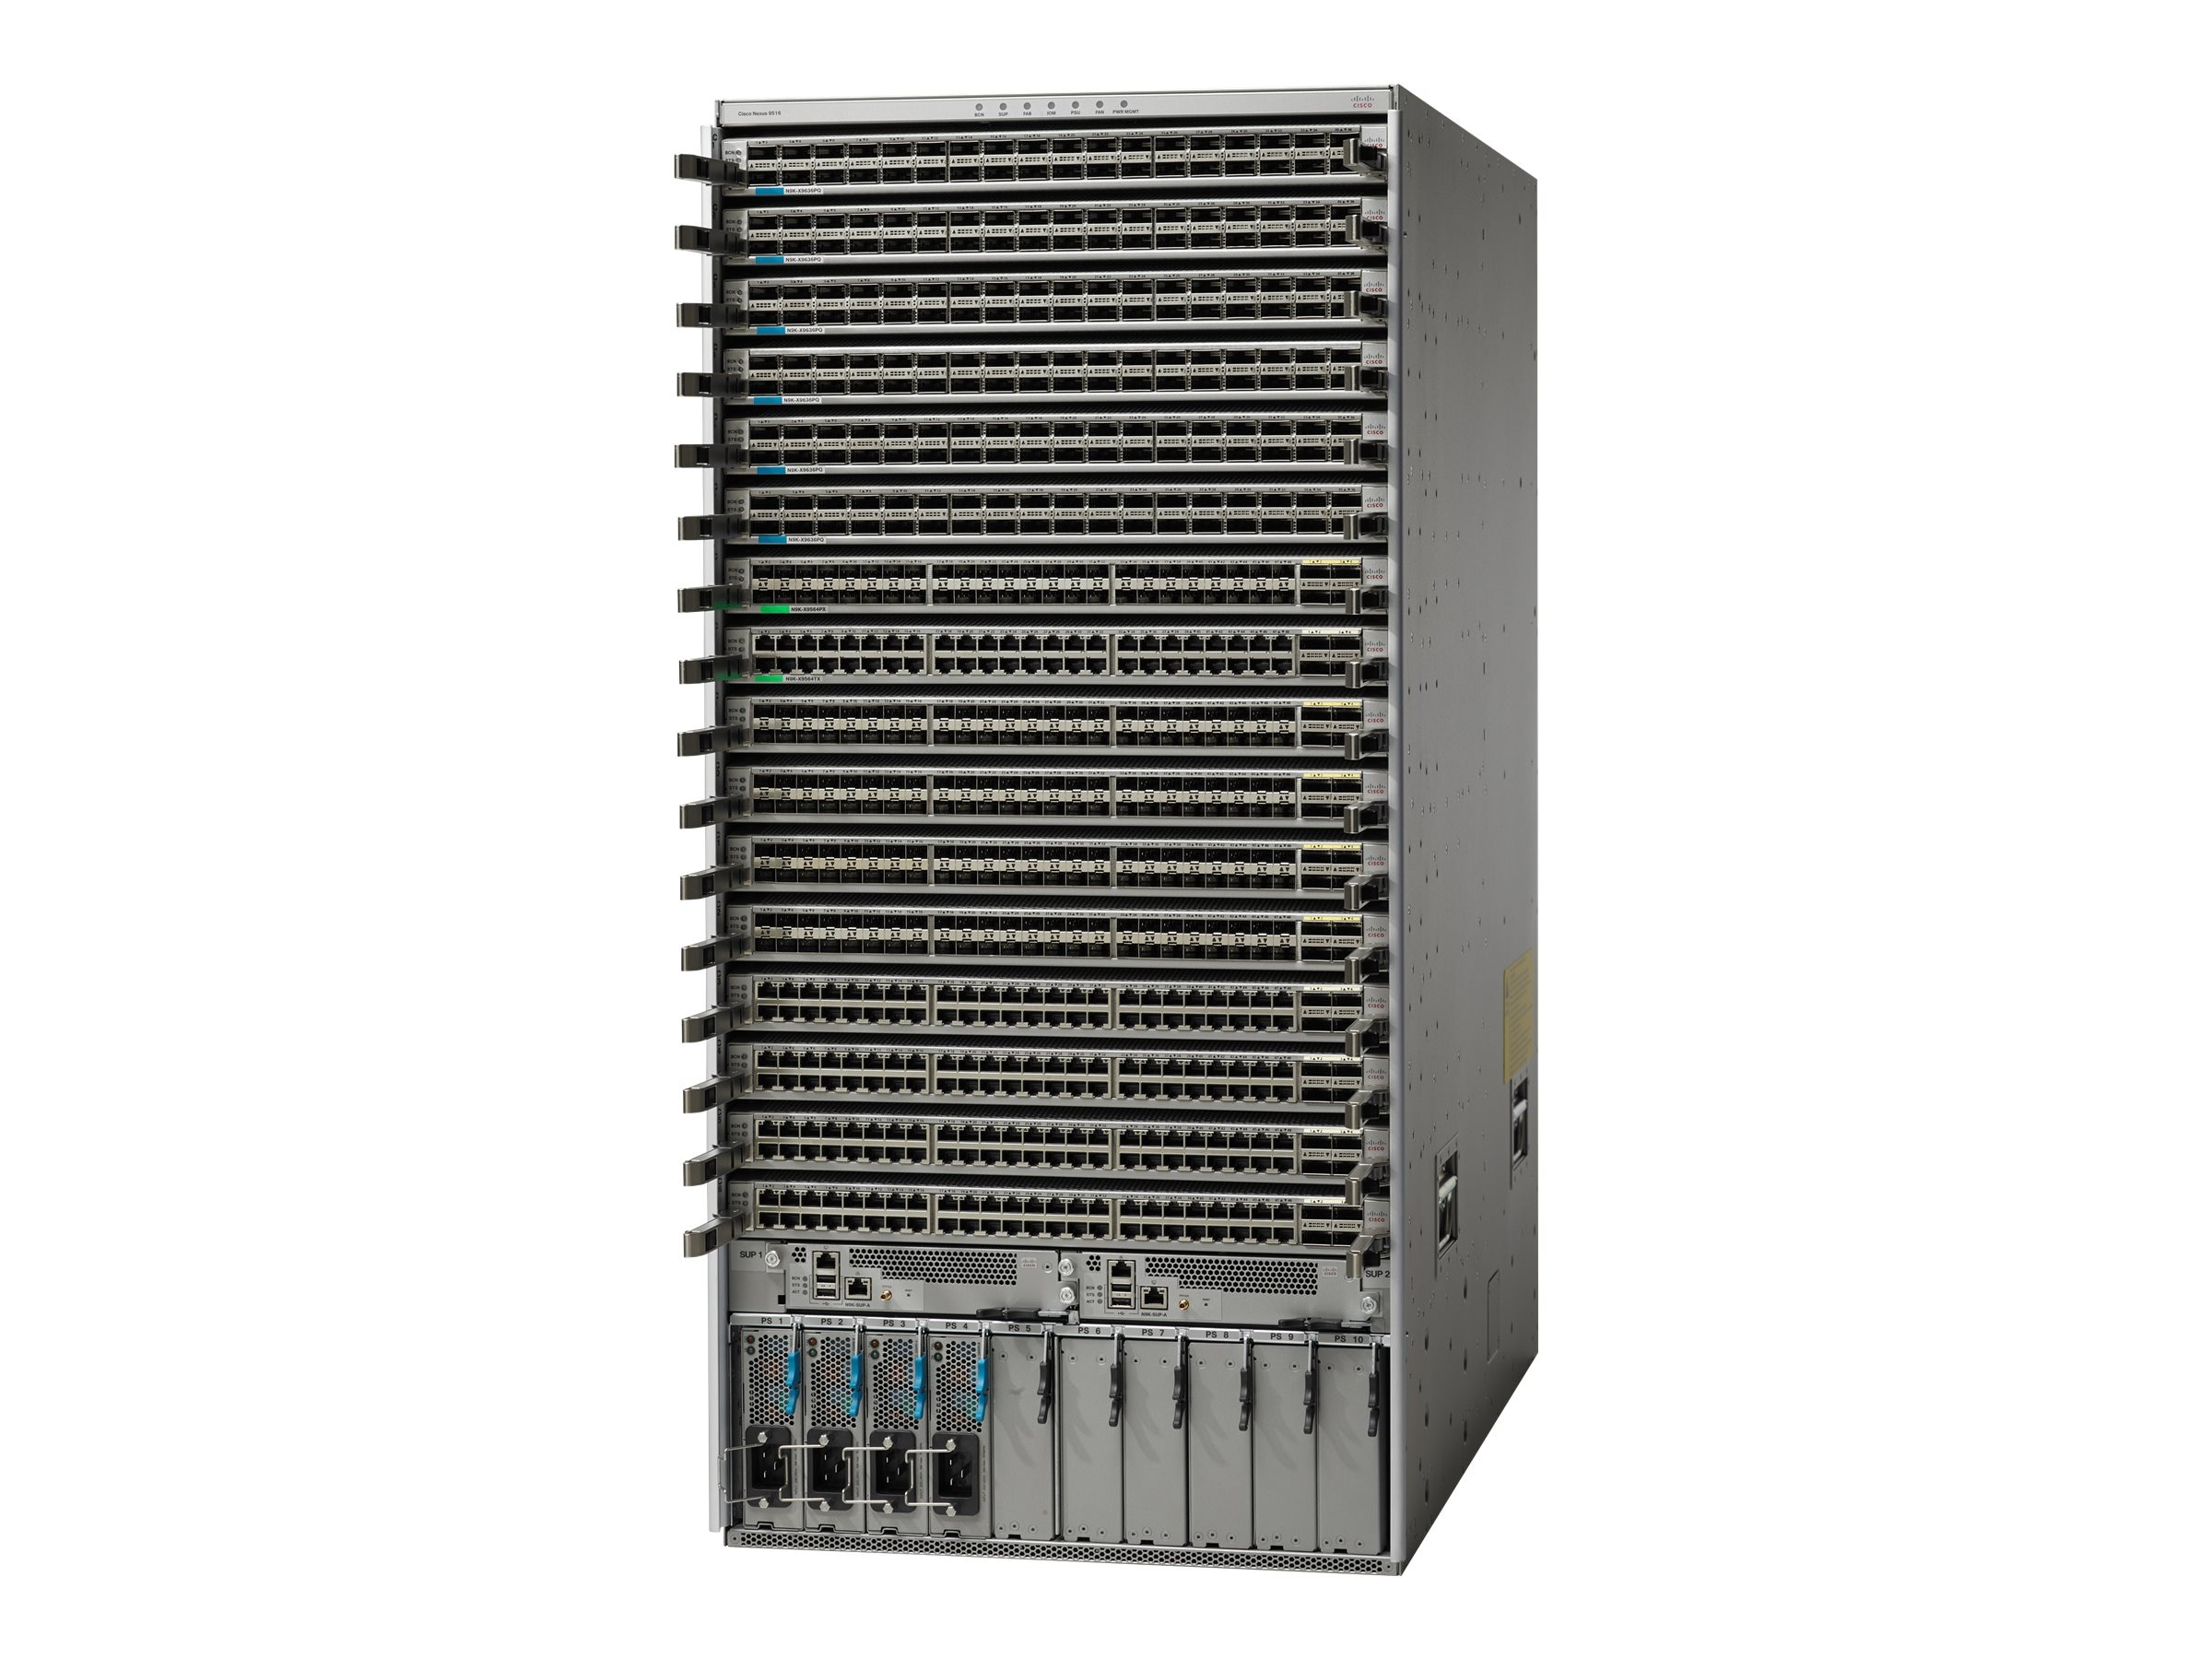 Cisco ONE Nexus 9516 Chassis w 16 Line Card Slots